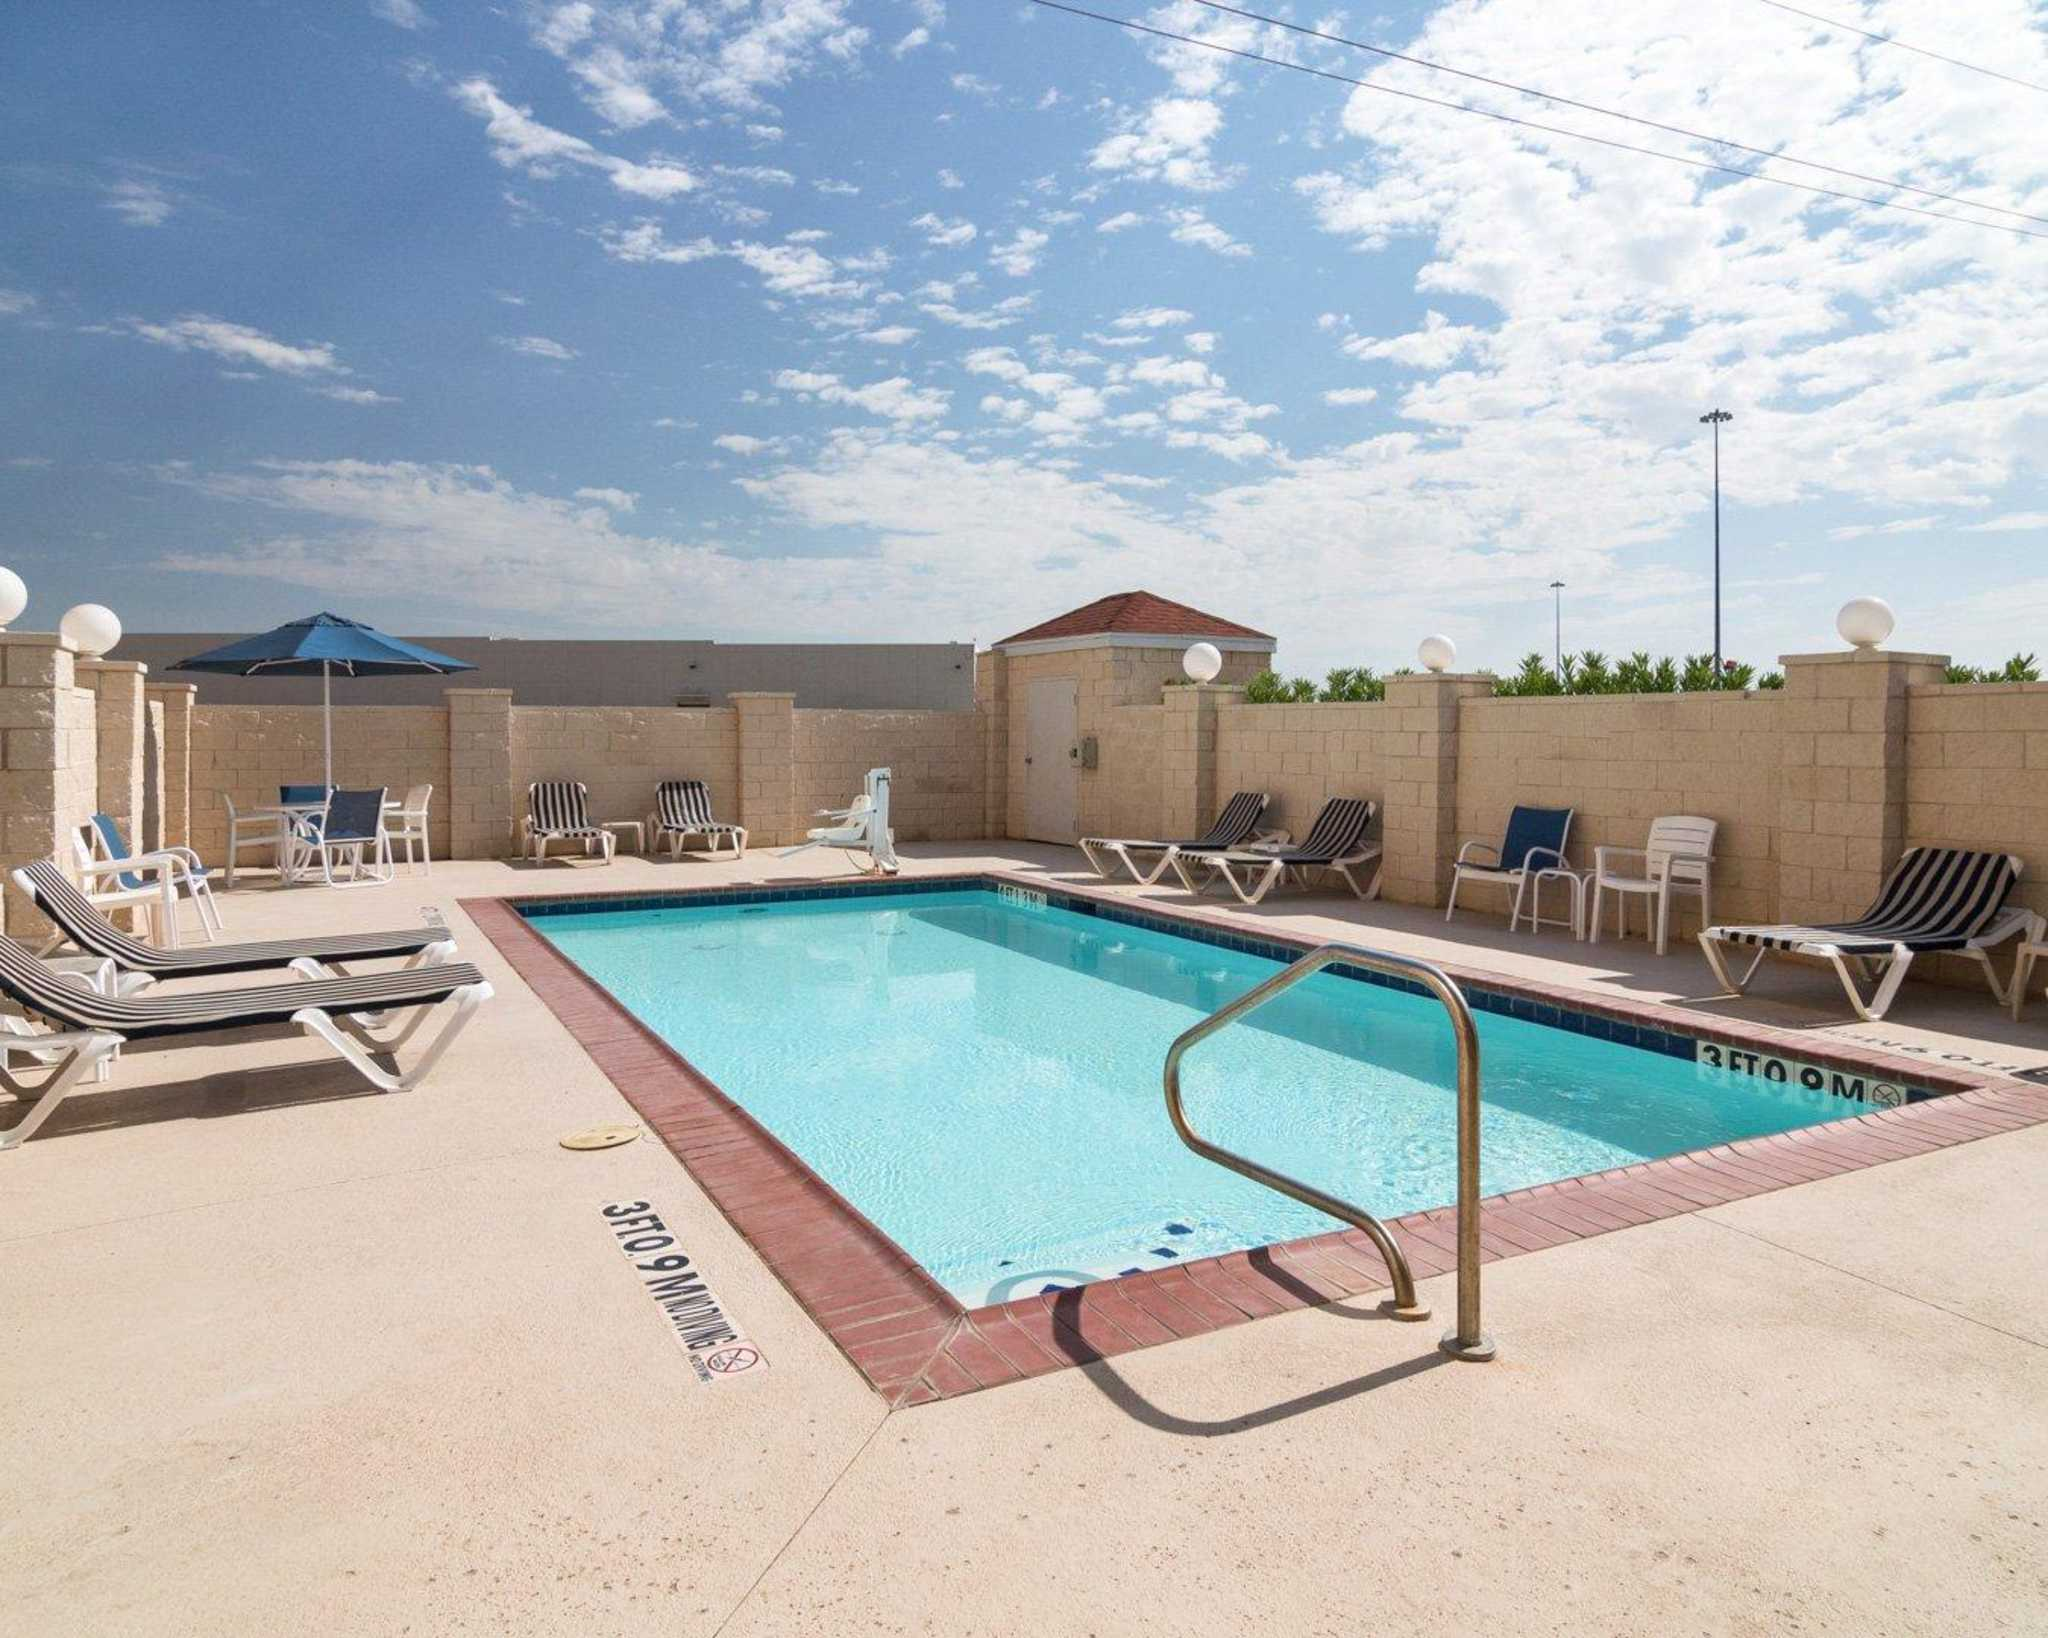 Hotels In Odessa Tx With Truck Parking